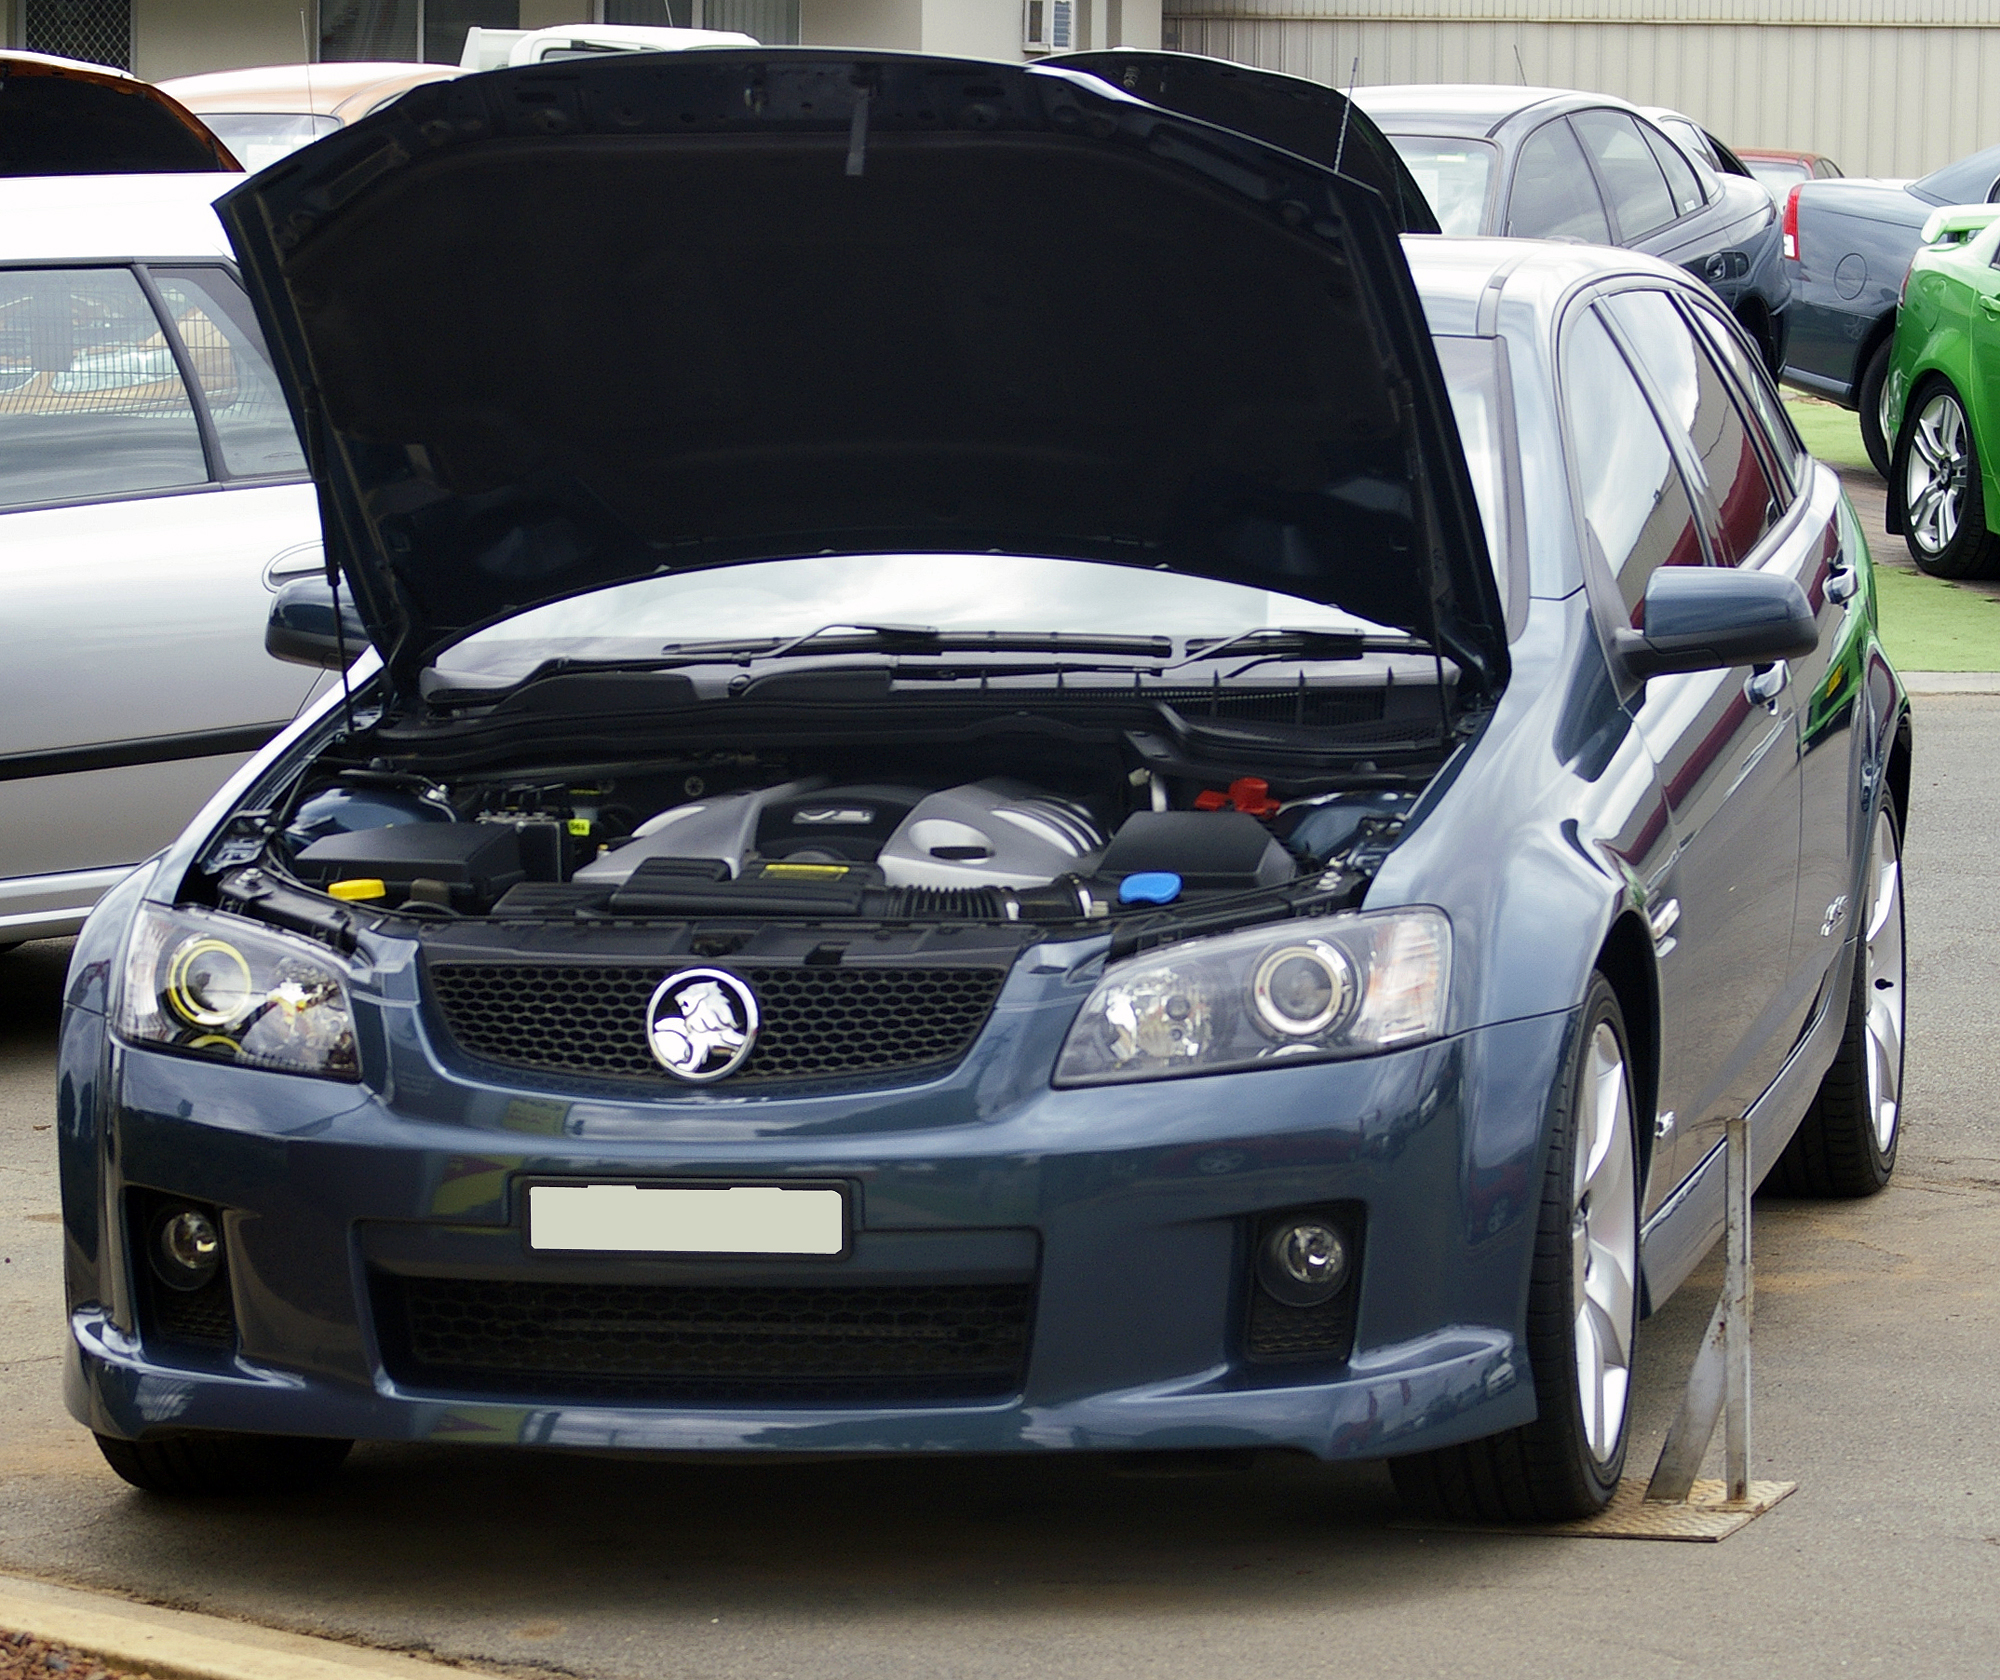 File2008 holden ve commodore my09 ss v sportwagong file2008 holden ve commodore my09 ss v sportwagong vanachro Images